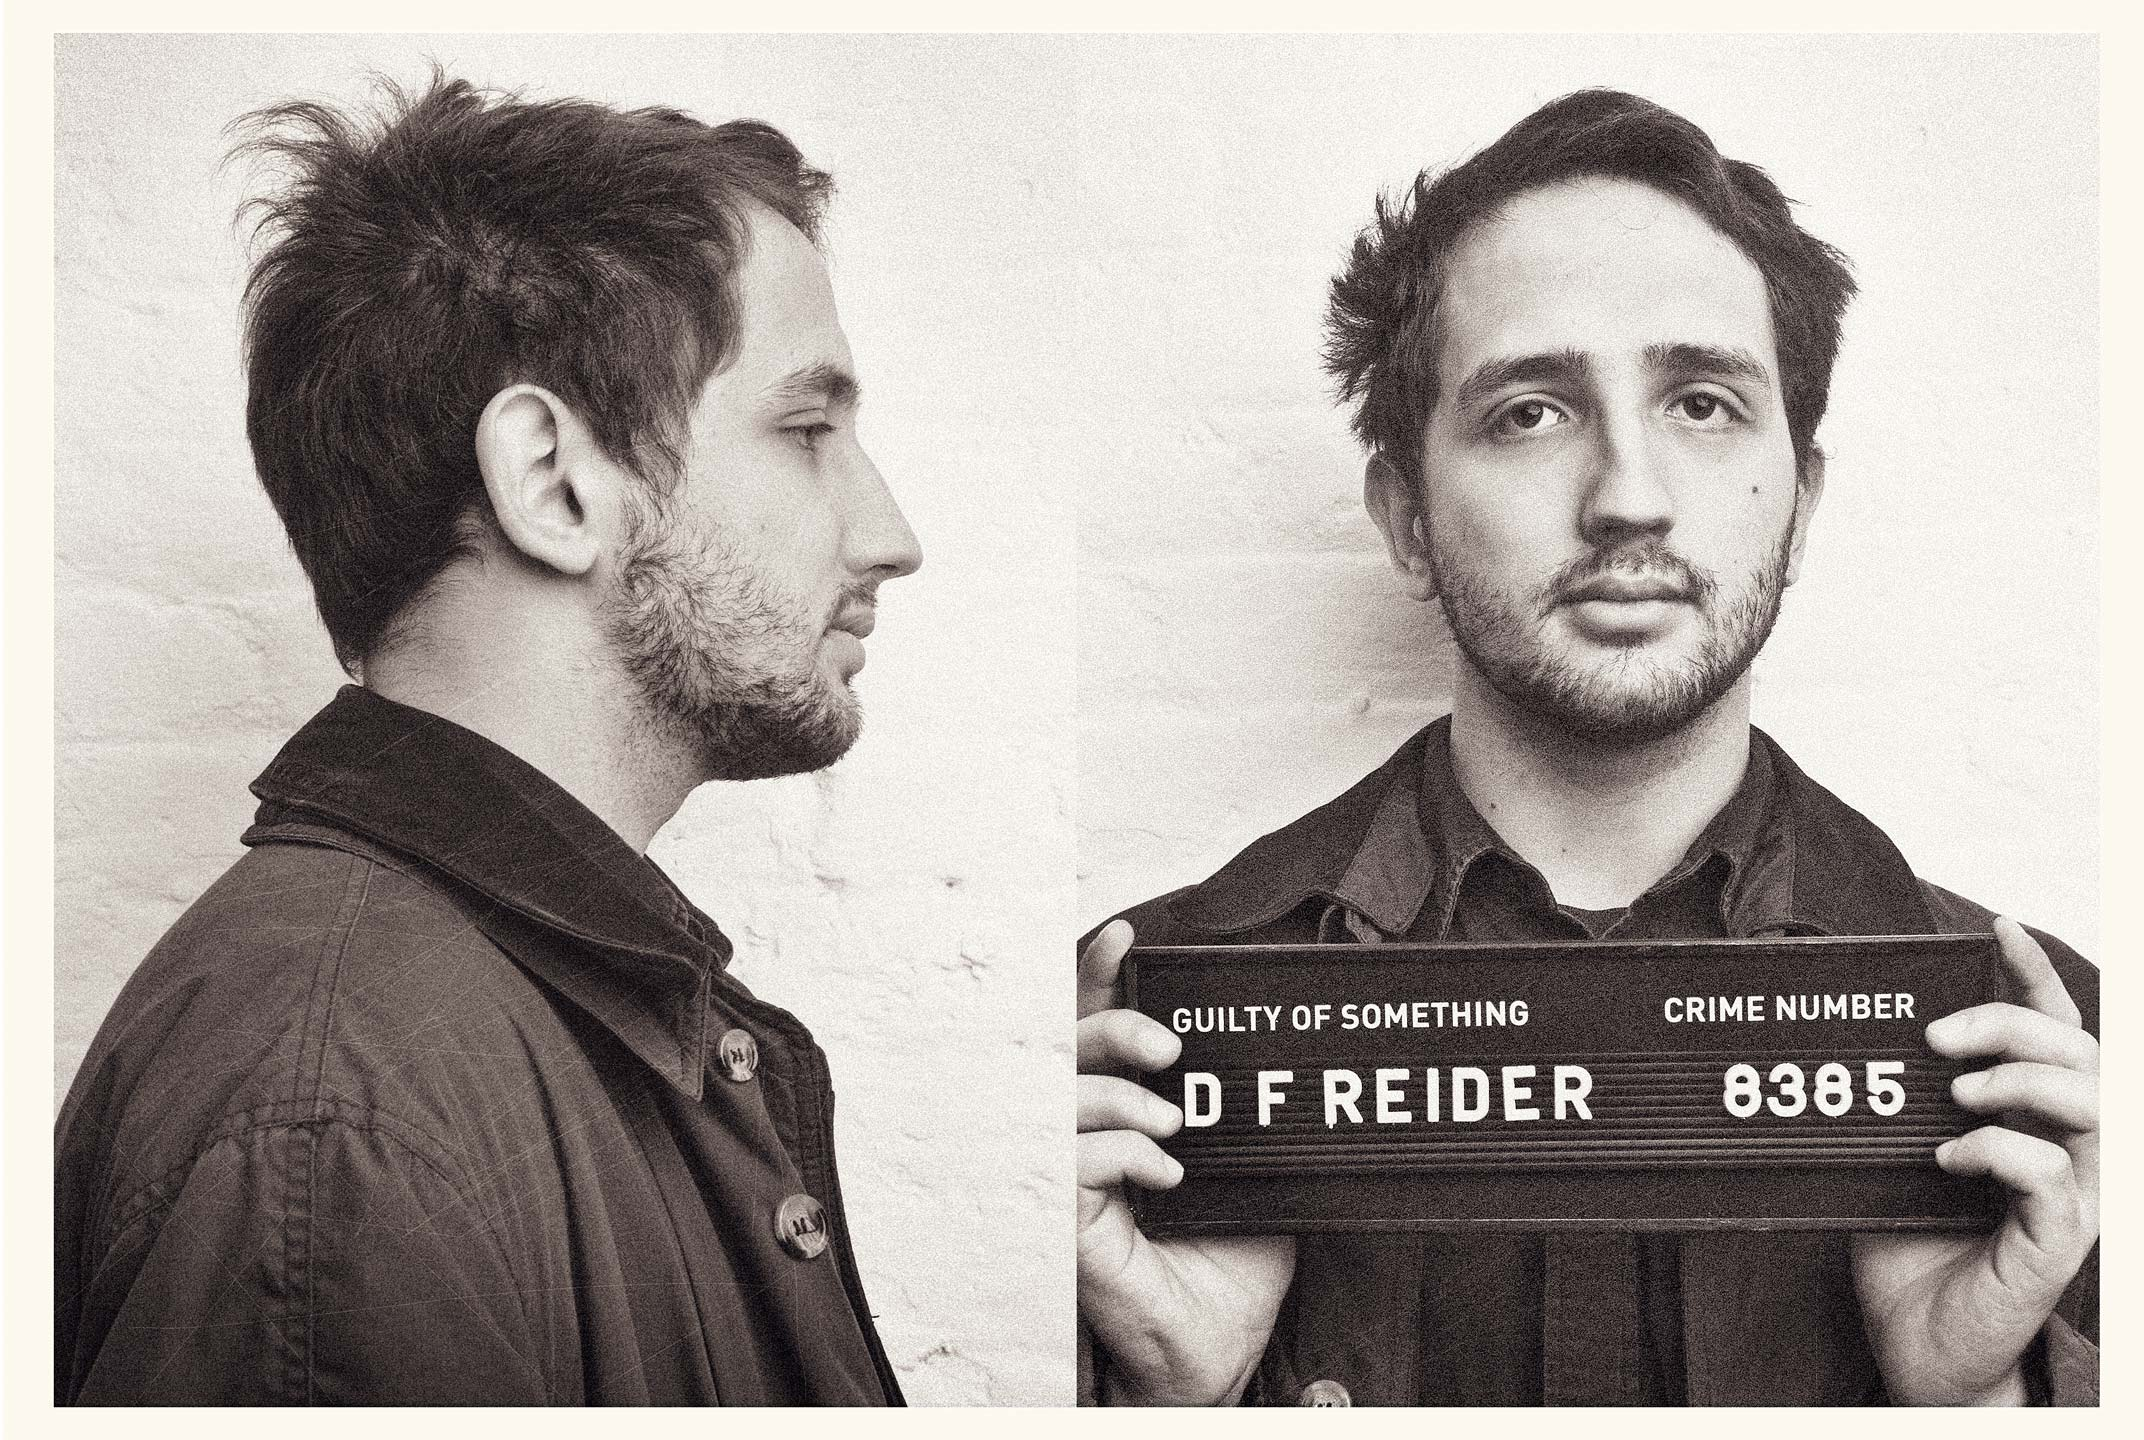 19.-Folio-Mugshot-1copy